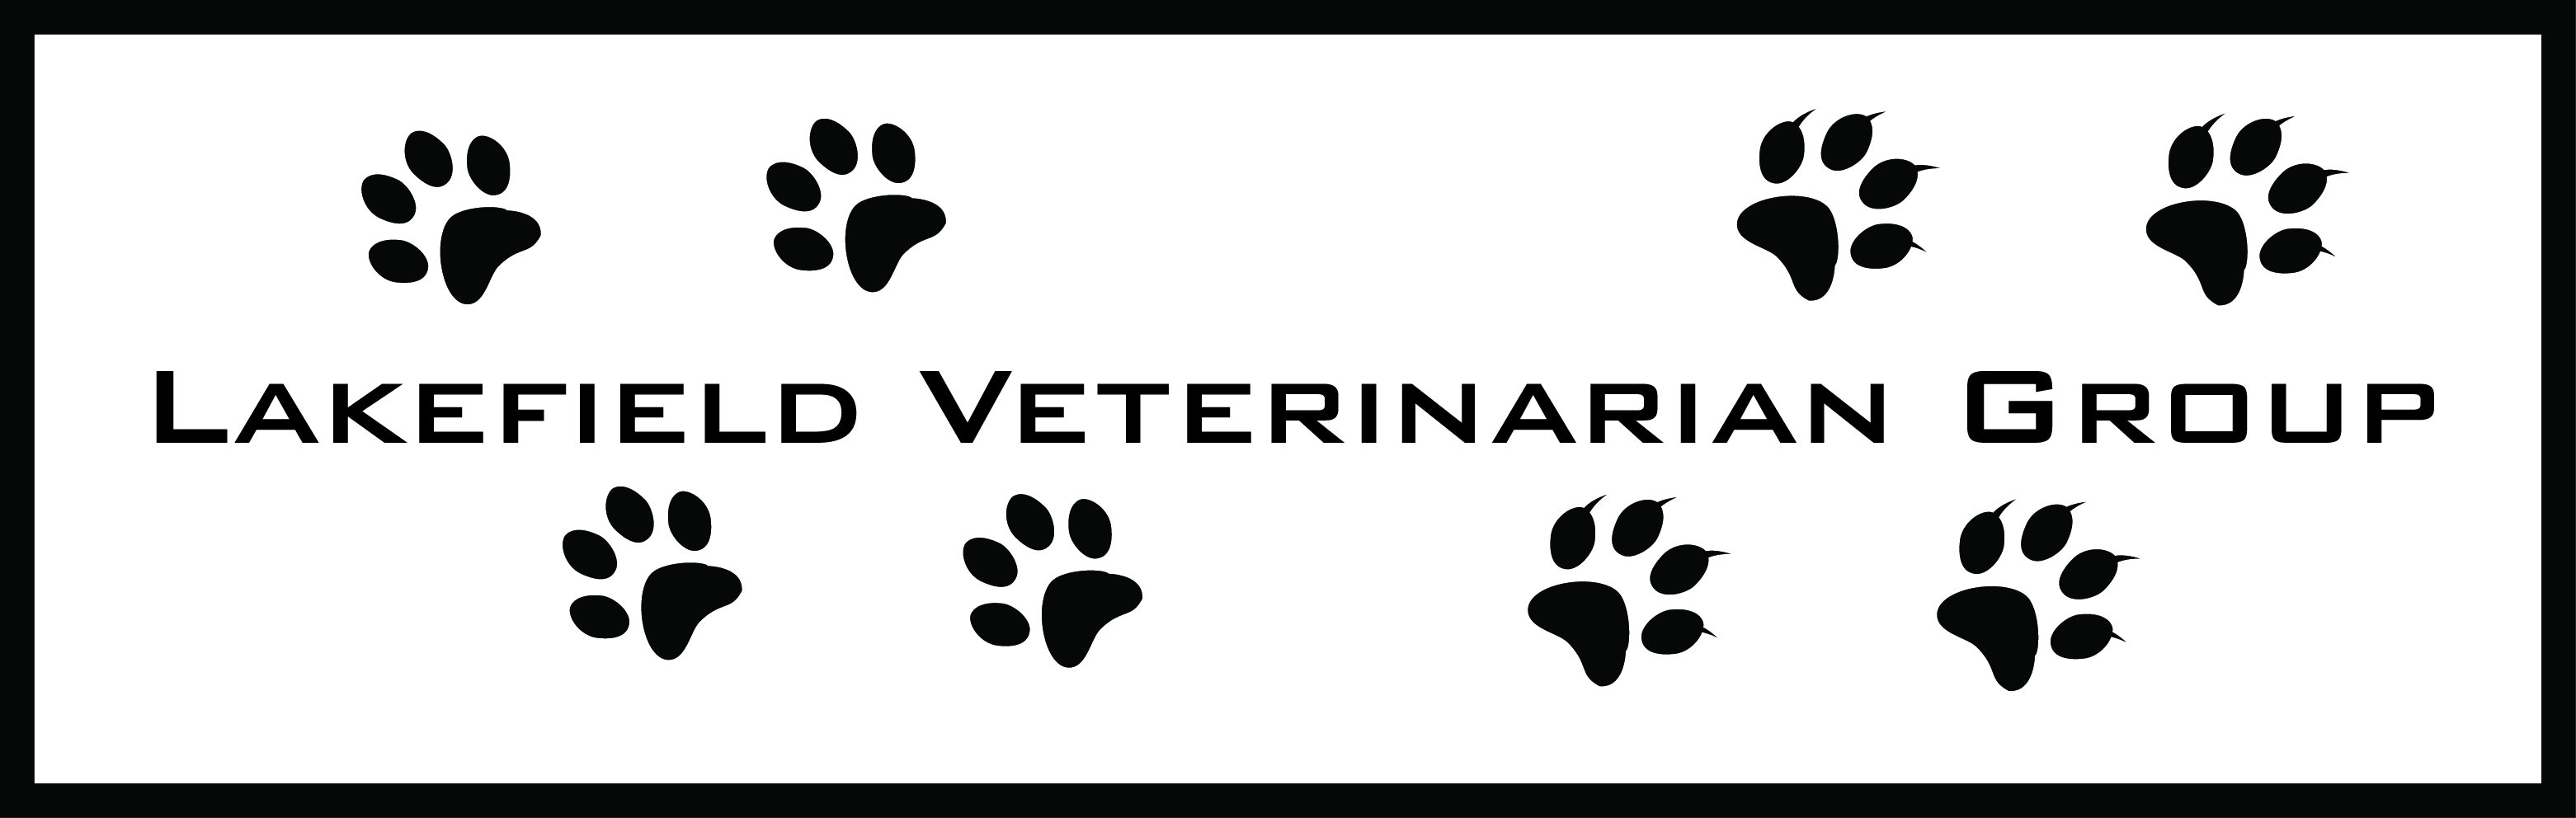 Logo Design by John Suits - Entry No. 3 in the Logo Design Contest Inspiring Logo Design for Lakefield Veterinary Group.